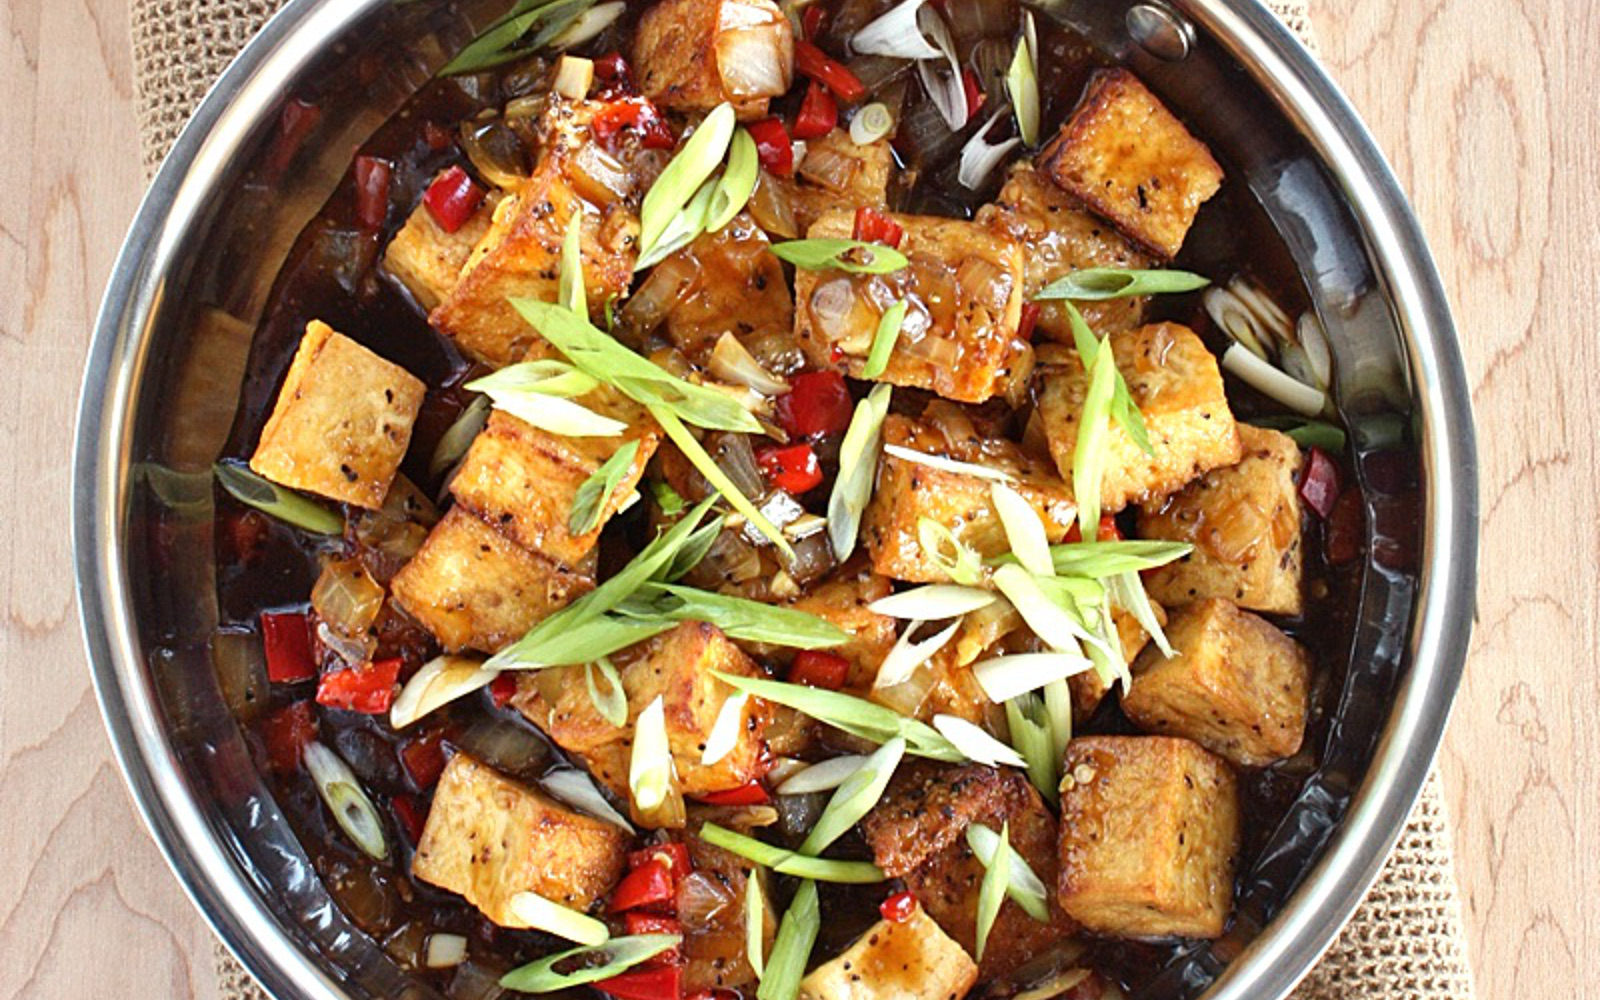 Vegan Tofu in Black Pepper Sauce